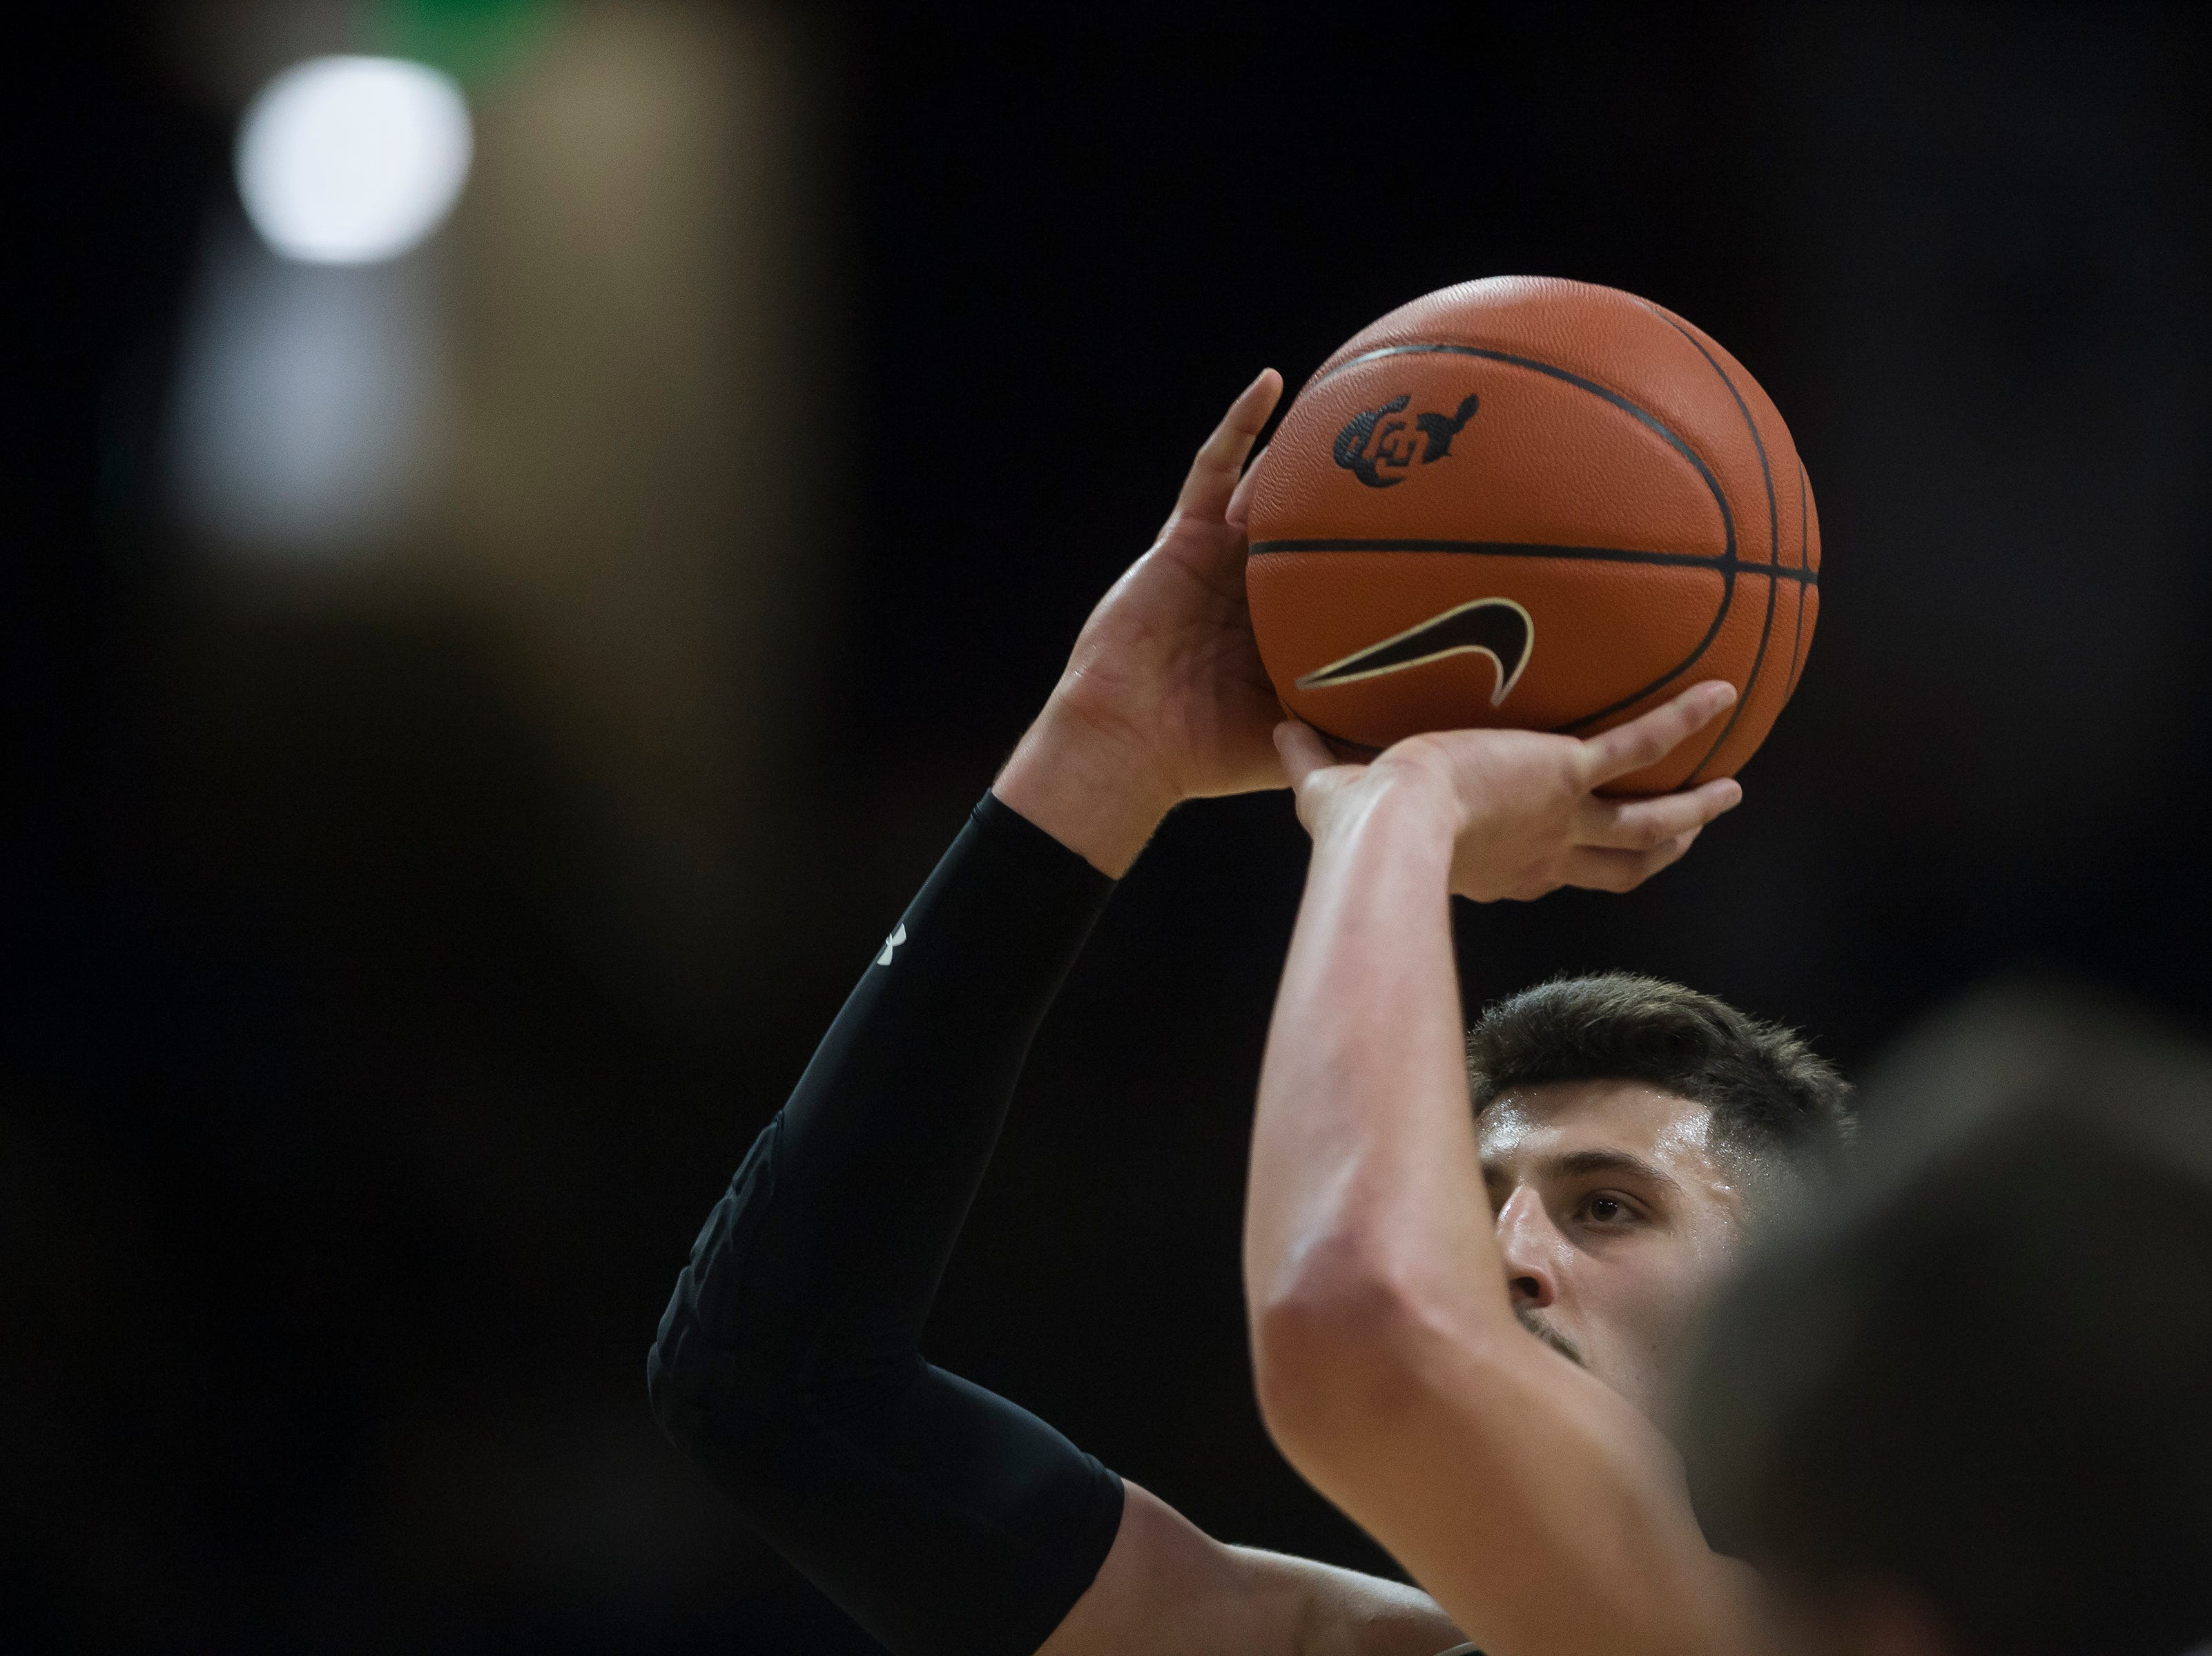 Colorado State University junior forward Nico Carvacho (32) attempts a free throw during a game against the University of Colorado on Saturday, Dec. 1, 2018, at the CU Event Center in Boulder, Colo.